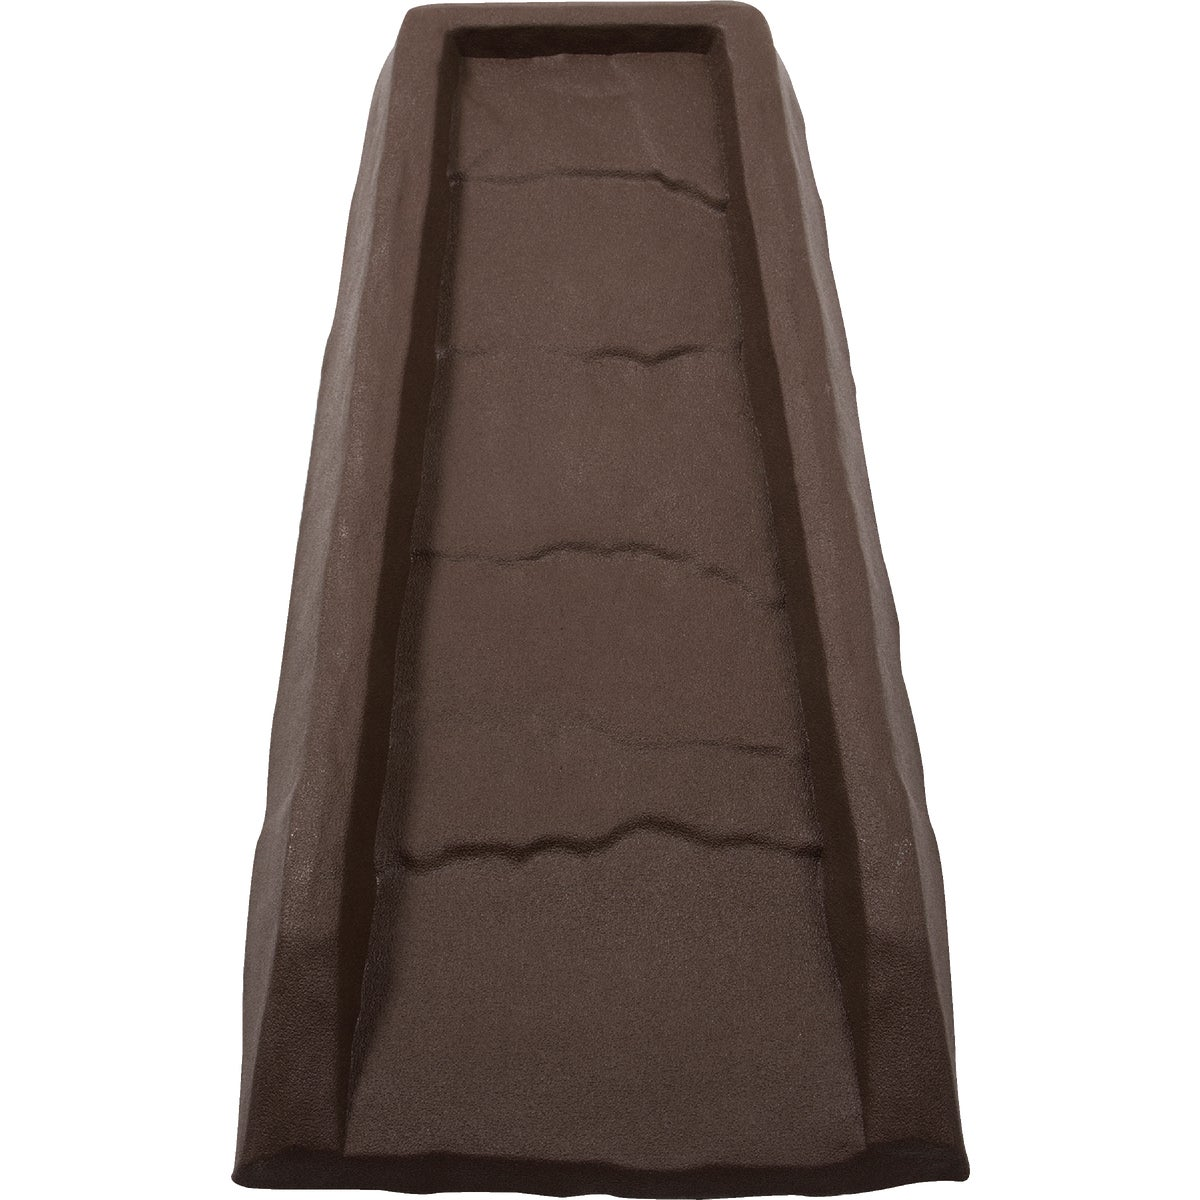 CHOC POLY SPLASH BLOCK - 30924 by Master Mark Pl Prod